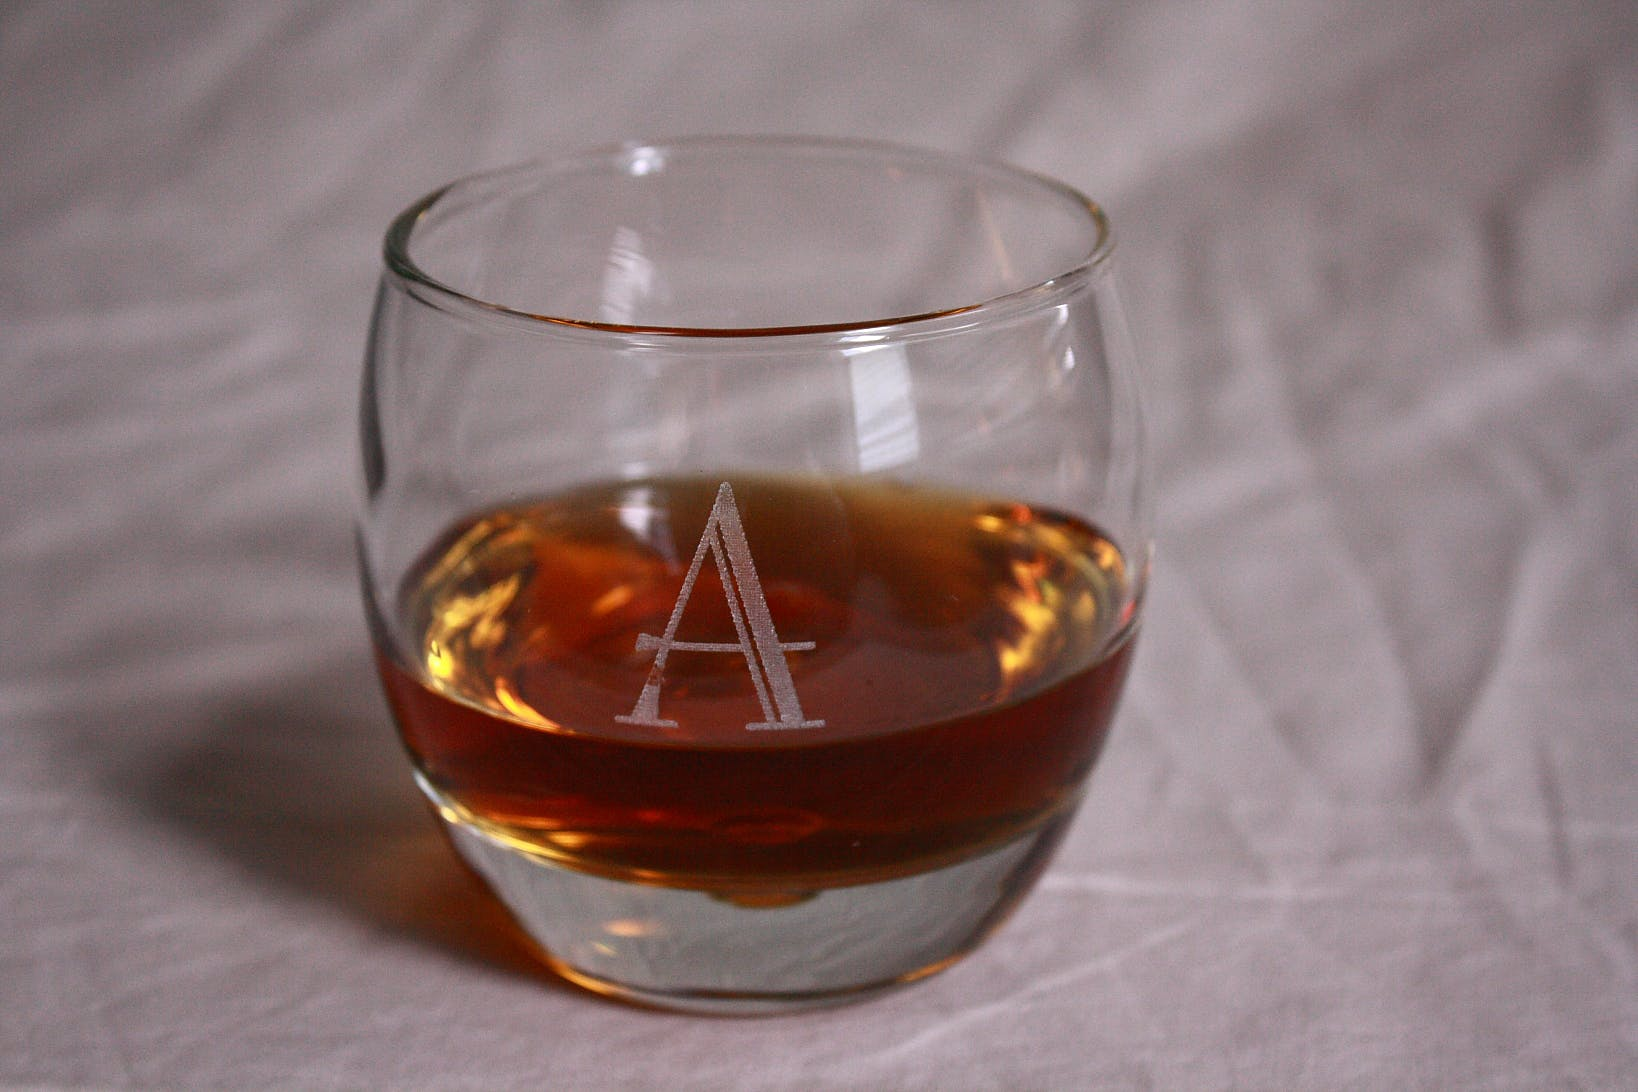 Personalized Rocks Glasses - sold by Bluegrass Barrels